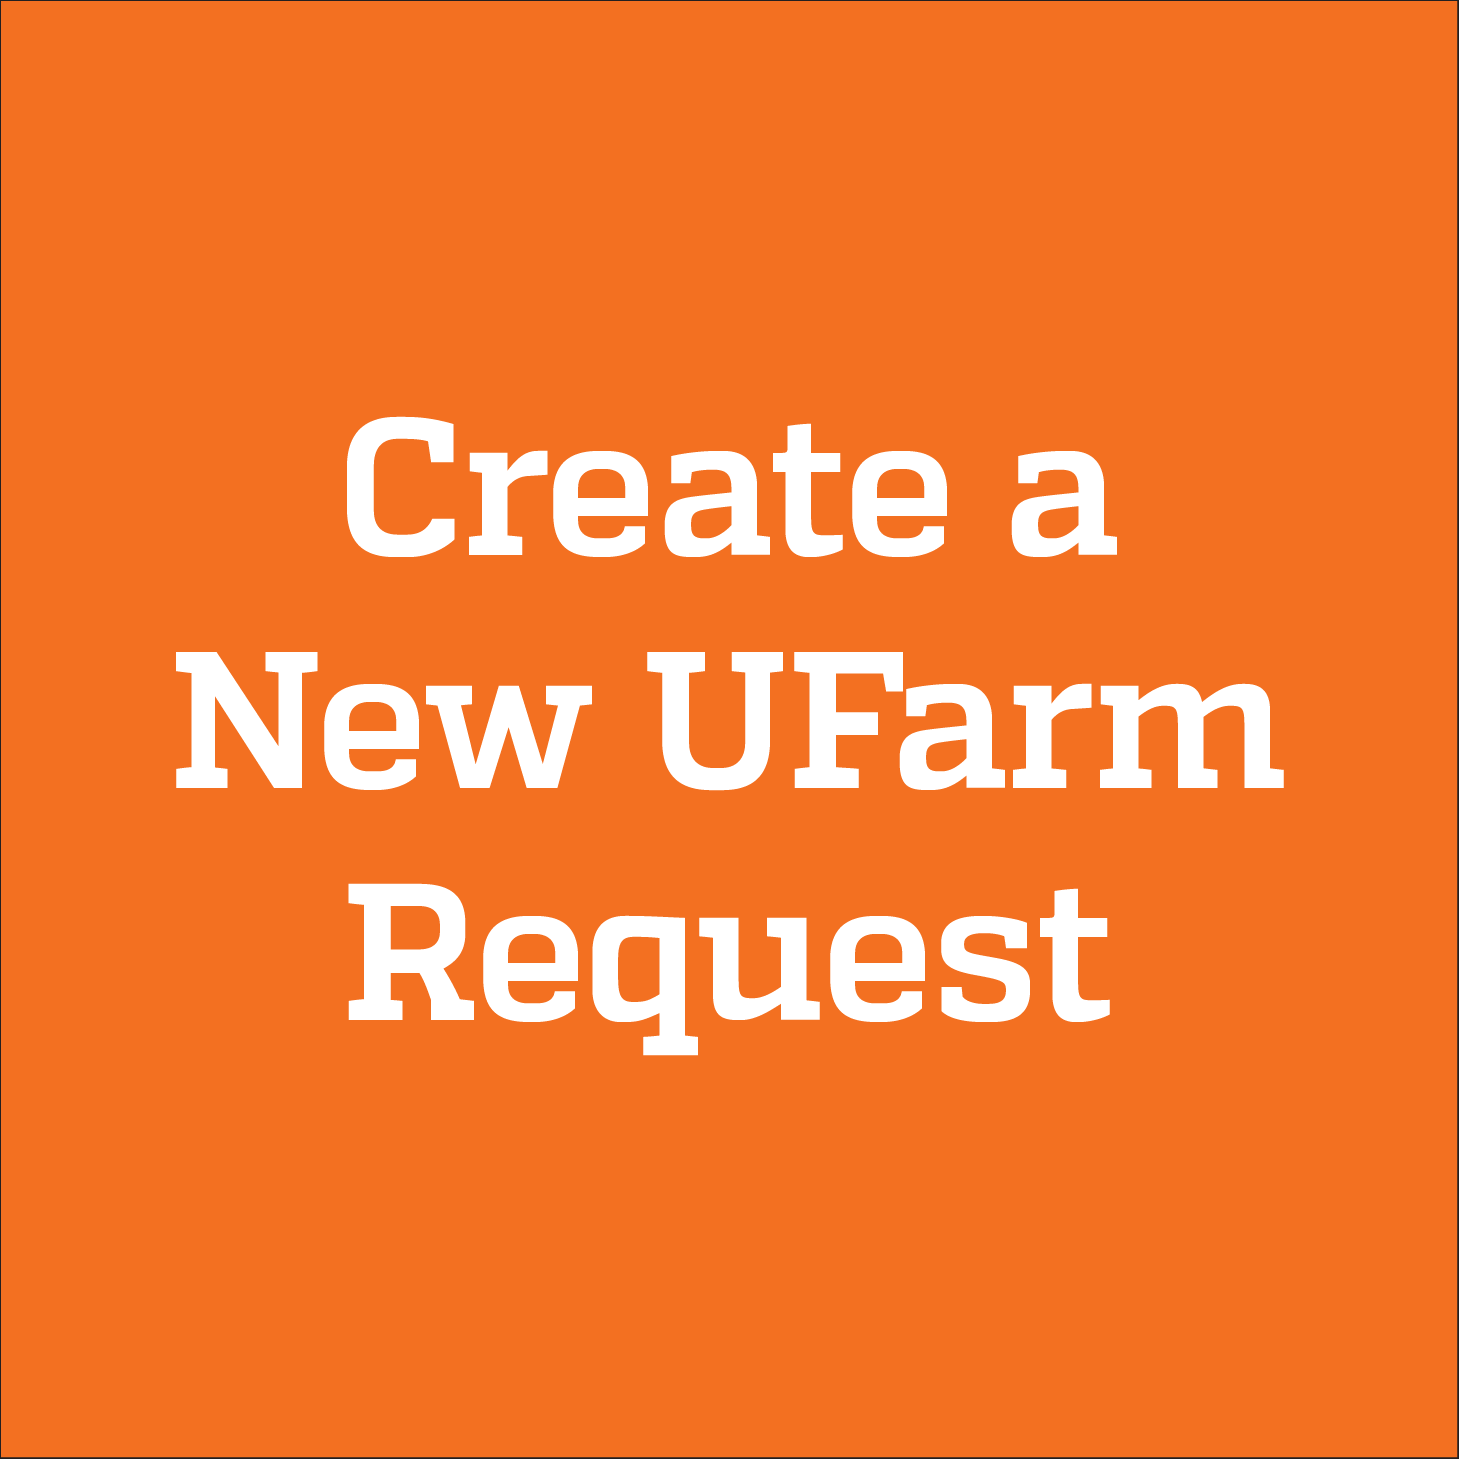 Create a New UFarm Request